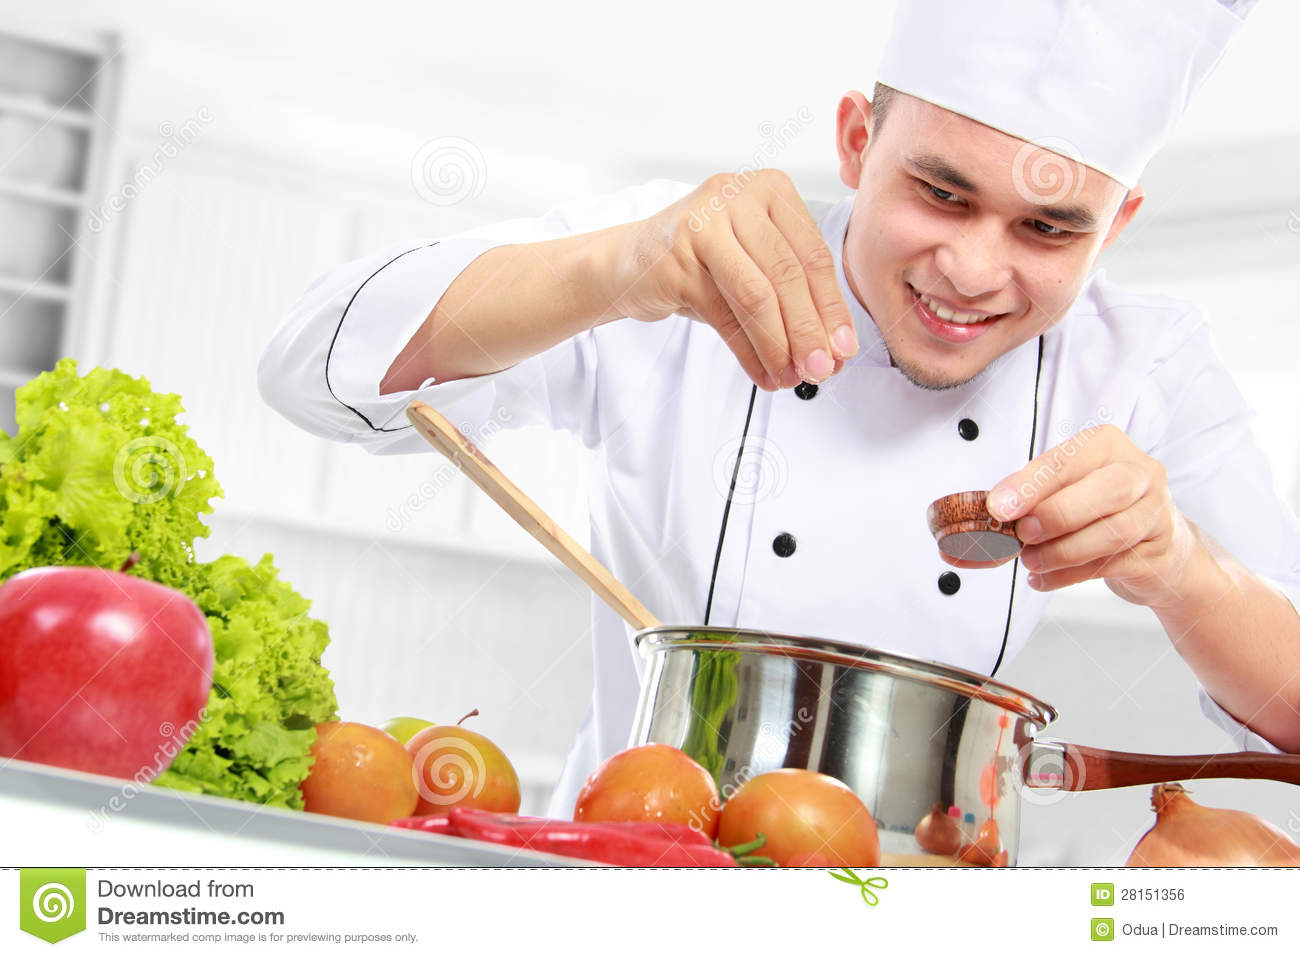 male-chef-cooking-28151356.jpg